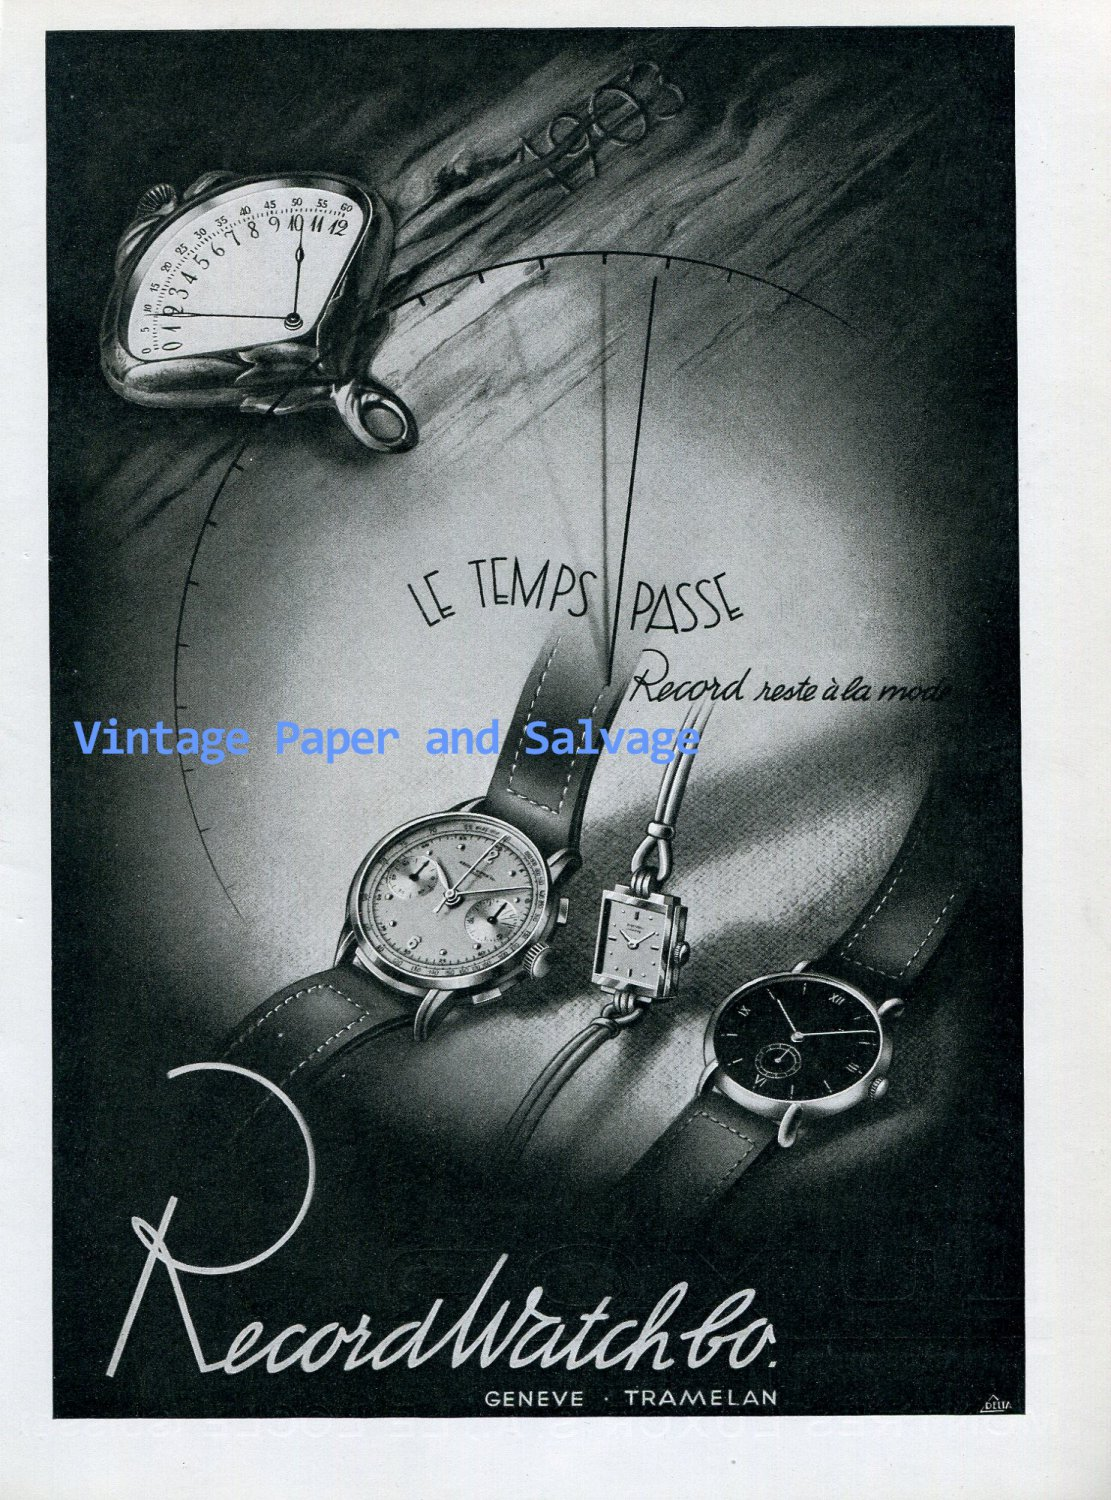 Vintage 1945 Record Watch Company Switzerland 1940s Swiss Ad Publicite Suisse Suiza